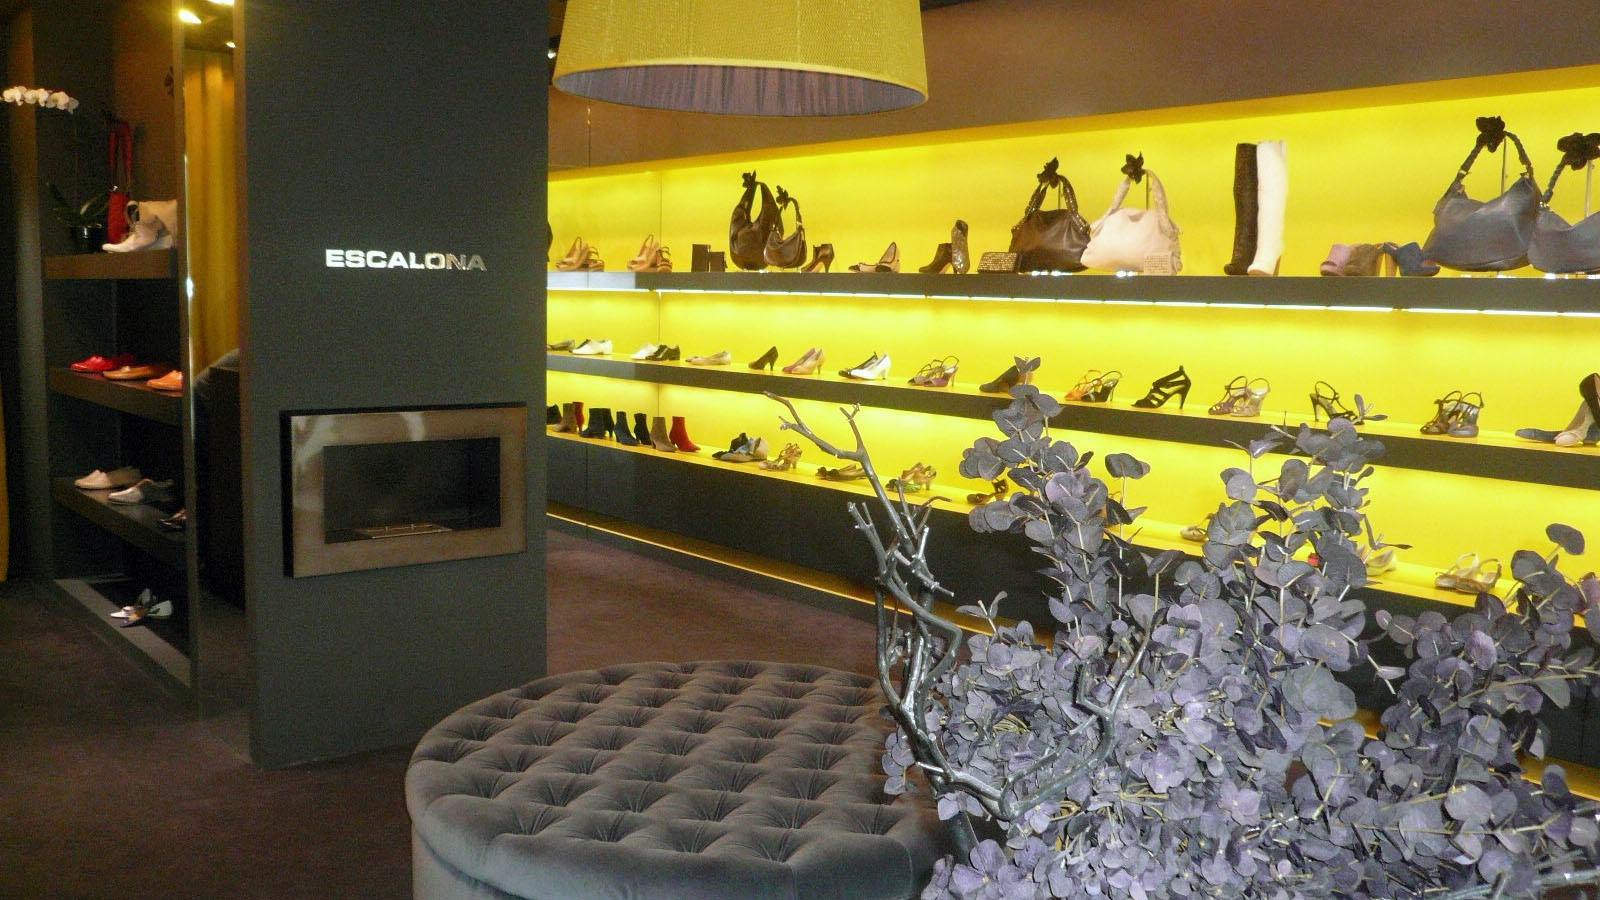 Boutique Escalona Paris Efi Design (7)